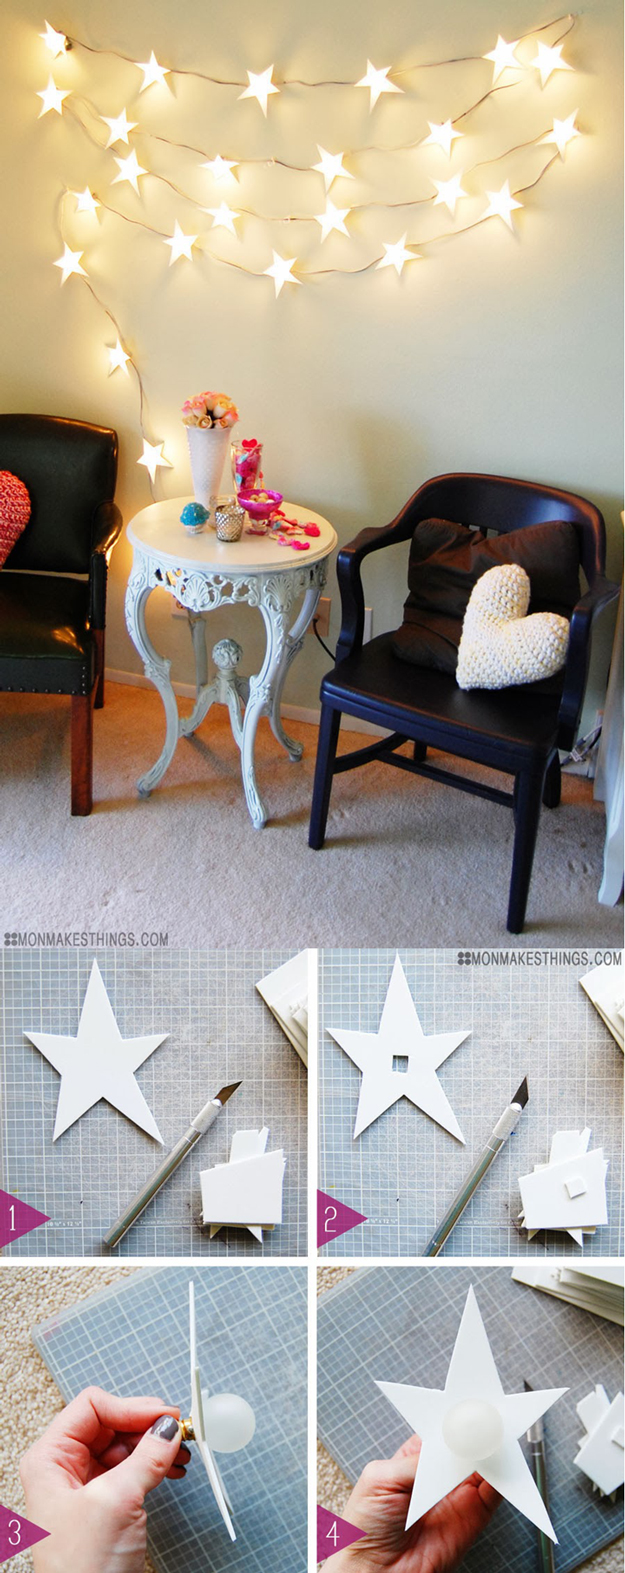 string light diy ideas for cool home decor star garland christmas light diy are fun - Christmas Lights Room Decor